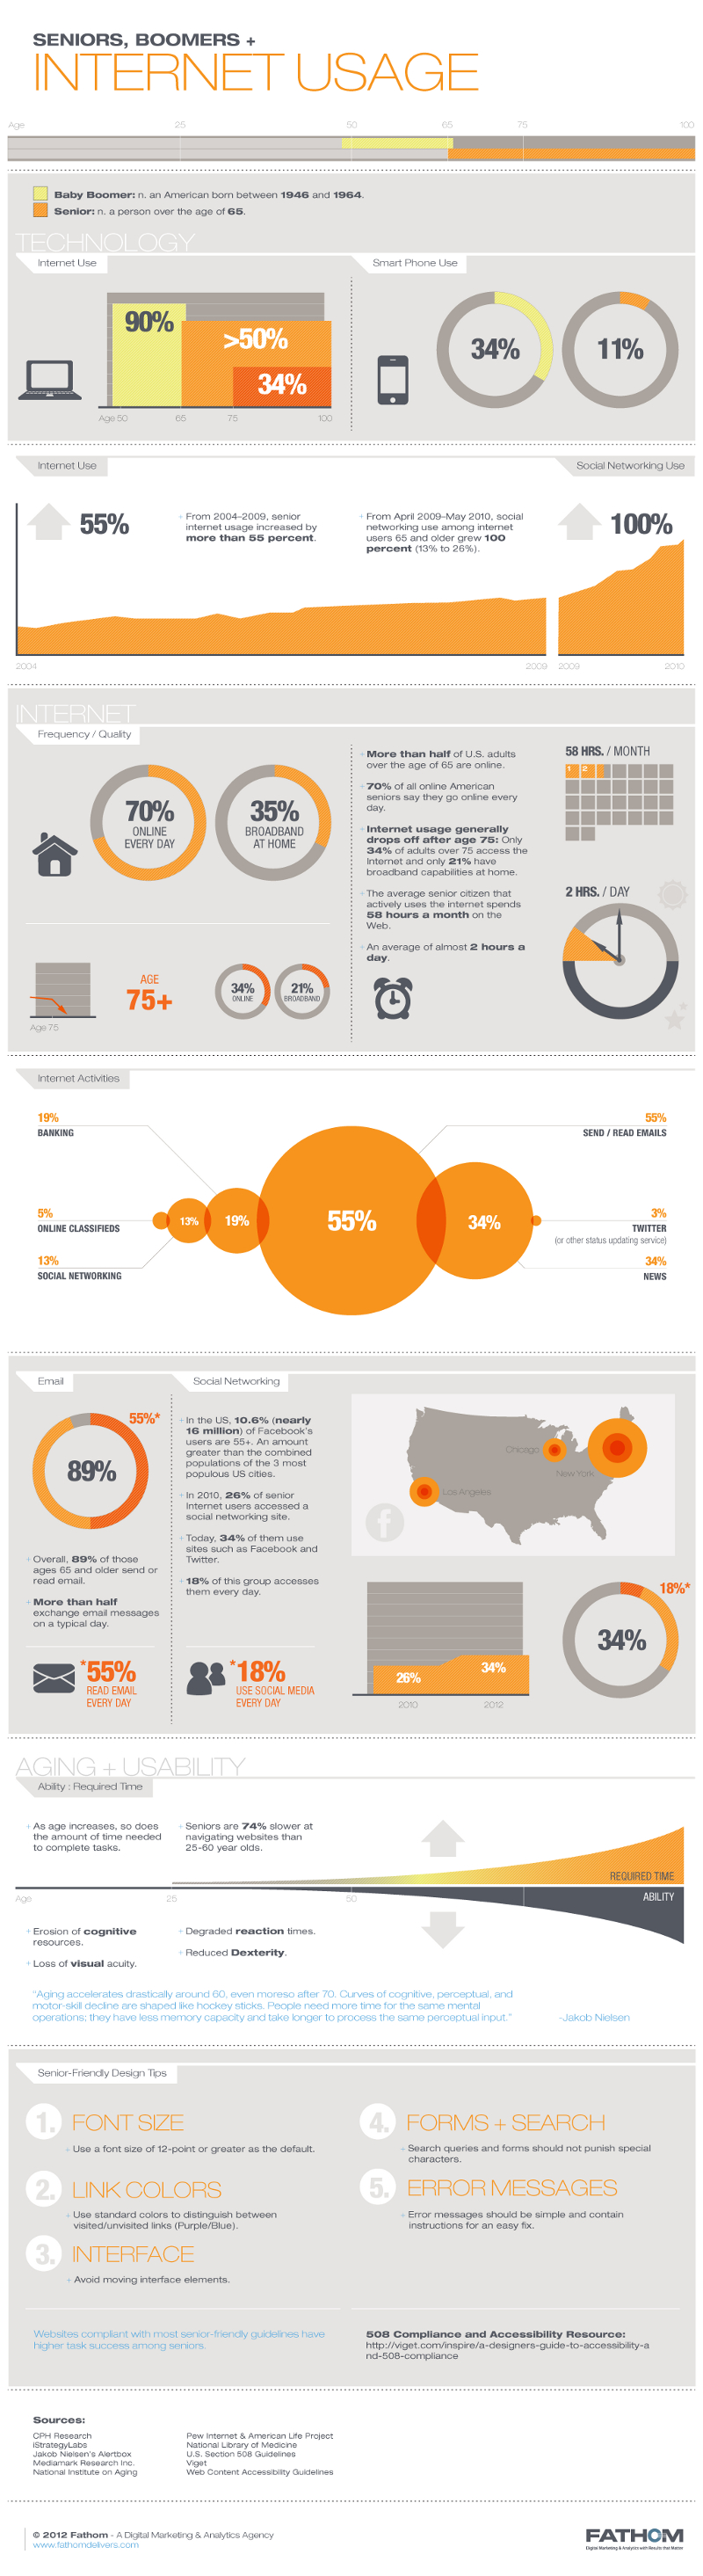 Senior Marketing and Boomer Marketing Statistics